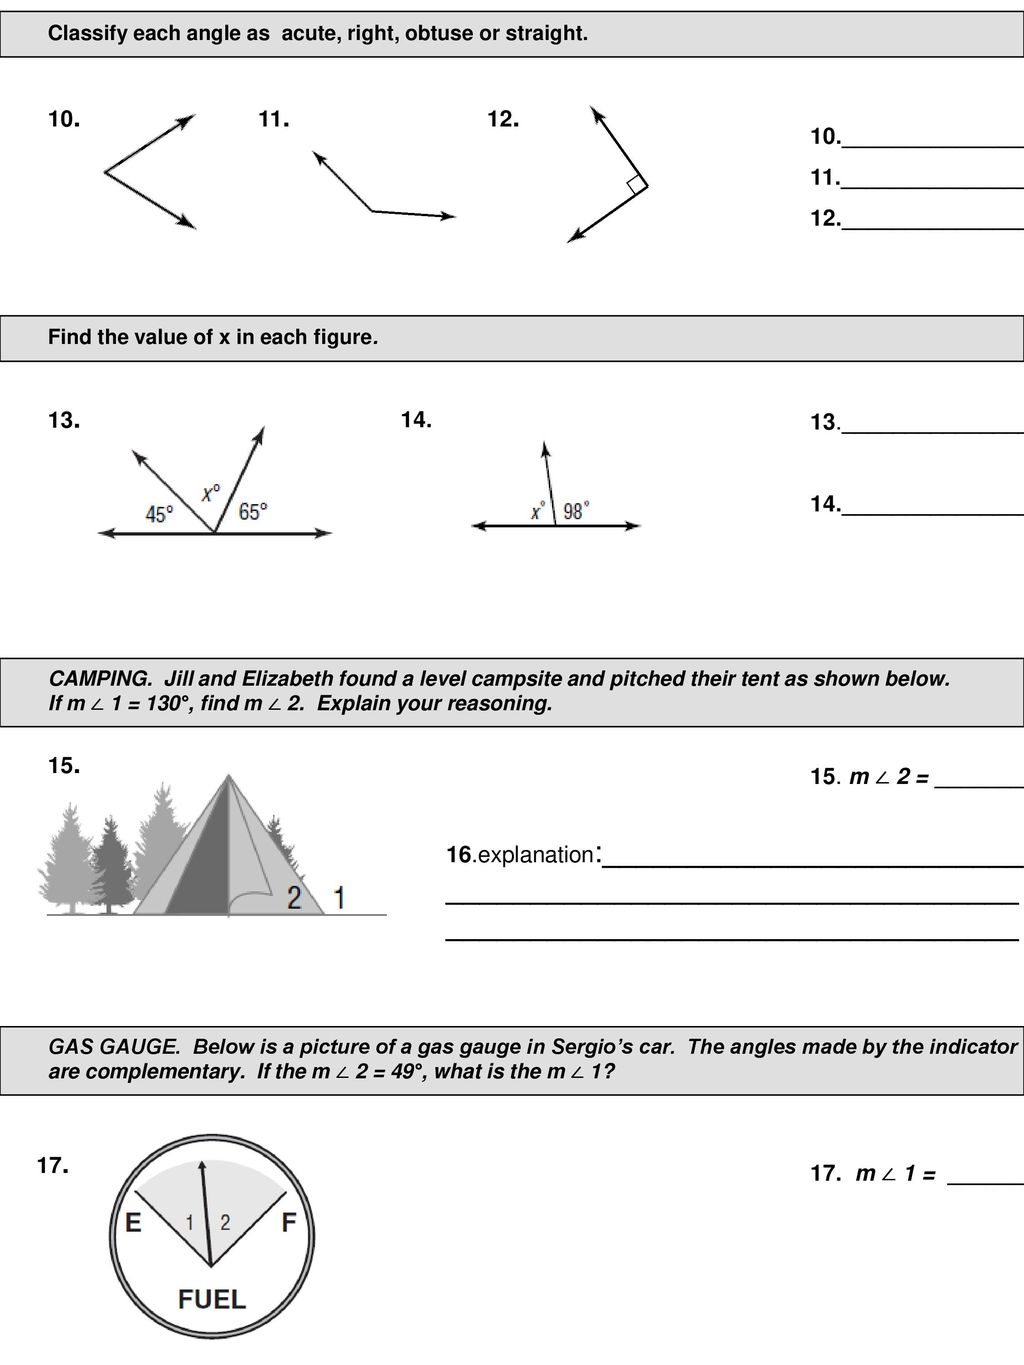 Fantastisch Chapter 11 Anatomy And Physiology Test Ideen ...